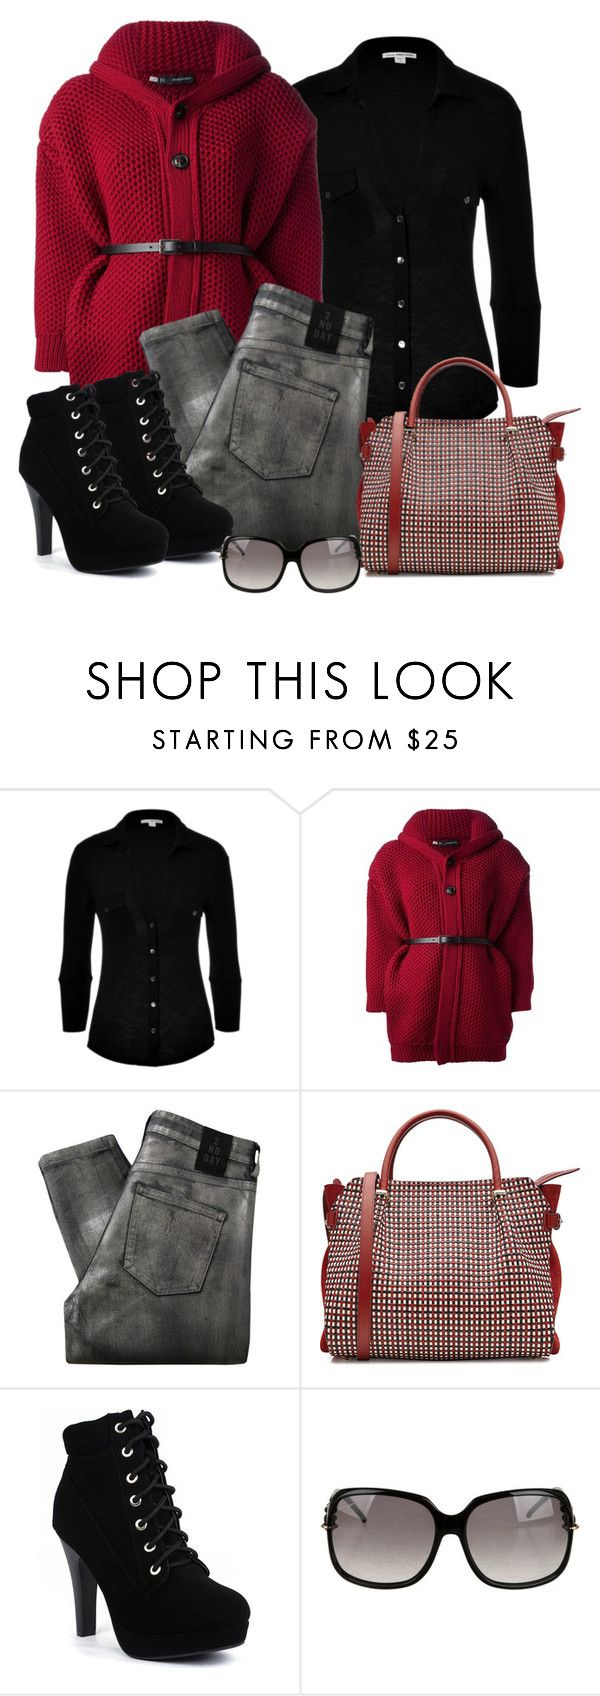 """""""Untitled #1222"""" by gallant81 ❤ liked on Polyvore featuring James Perse, Dsquared2, 2nd Day, Nina Ricci and Gucci"""